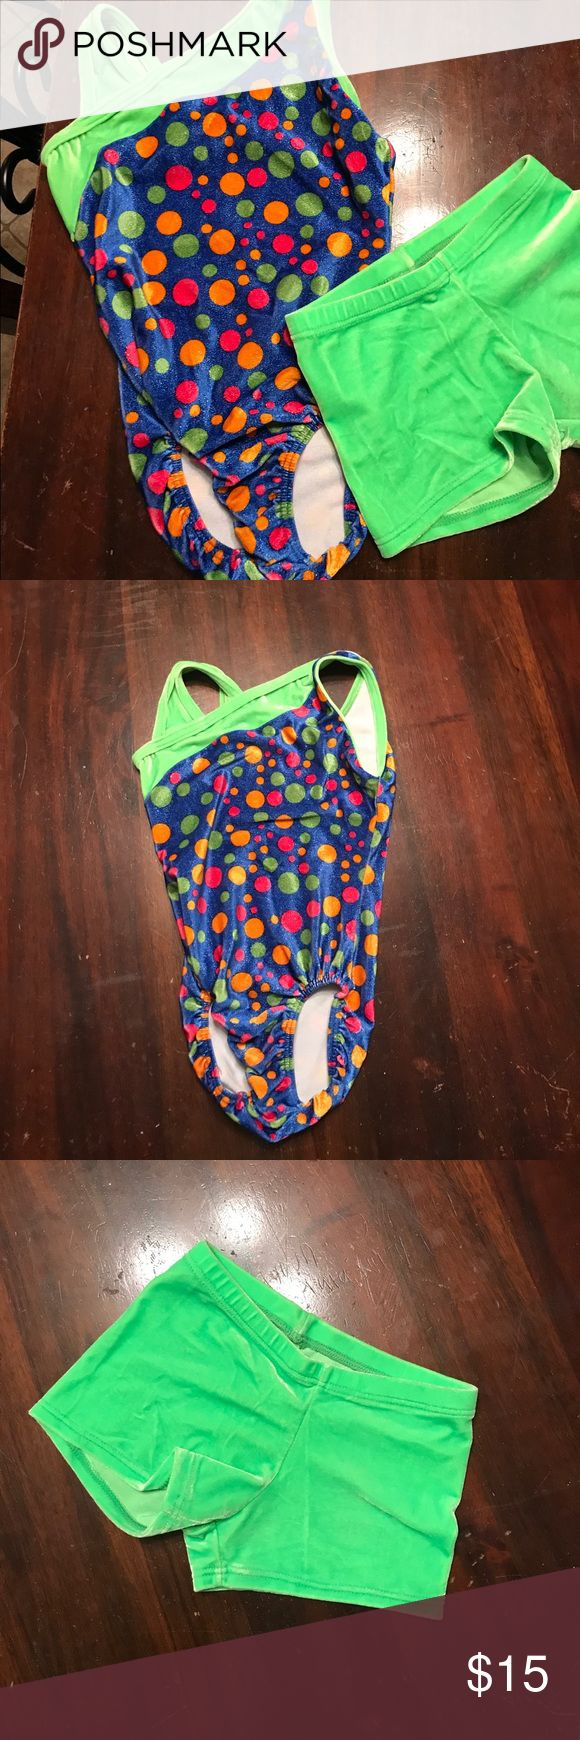 Gymnastics leotard with matching shorts, size M Blue MotionWear Gymnastics leotard with green trim and polka dots. Matching lime green shorts. Perfect for your little gymnast! 🤸🏻♀️ Both leo and shorts are by MotionWear and are a size Medium Child (8-10) MotionWear Other